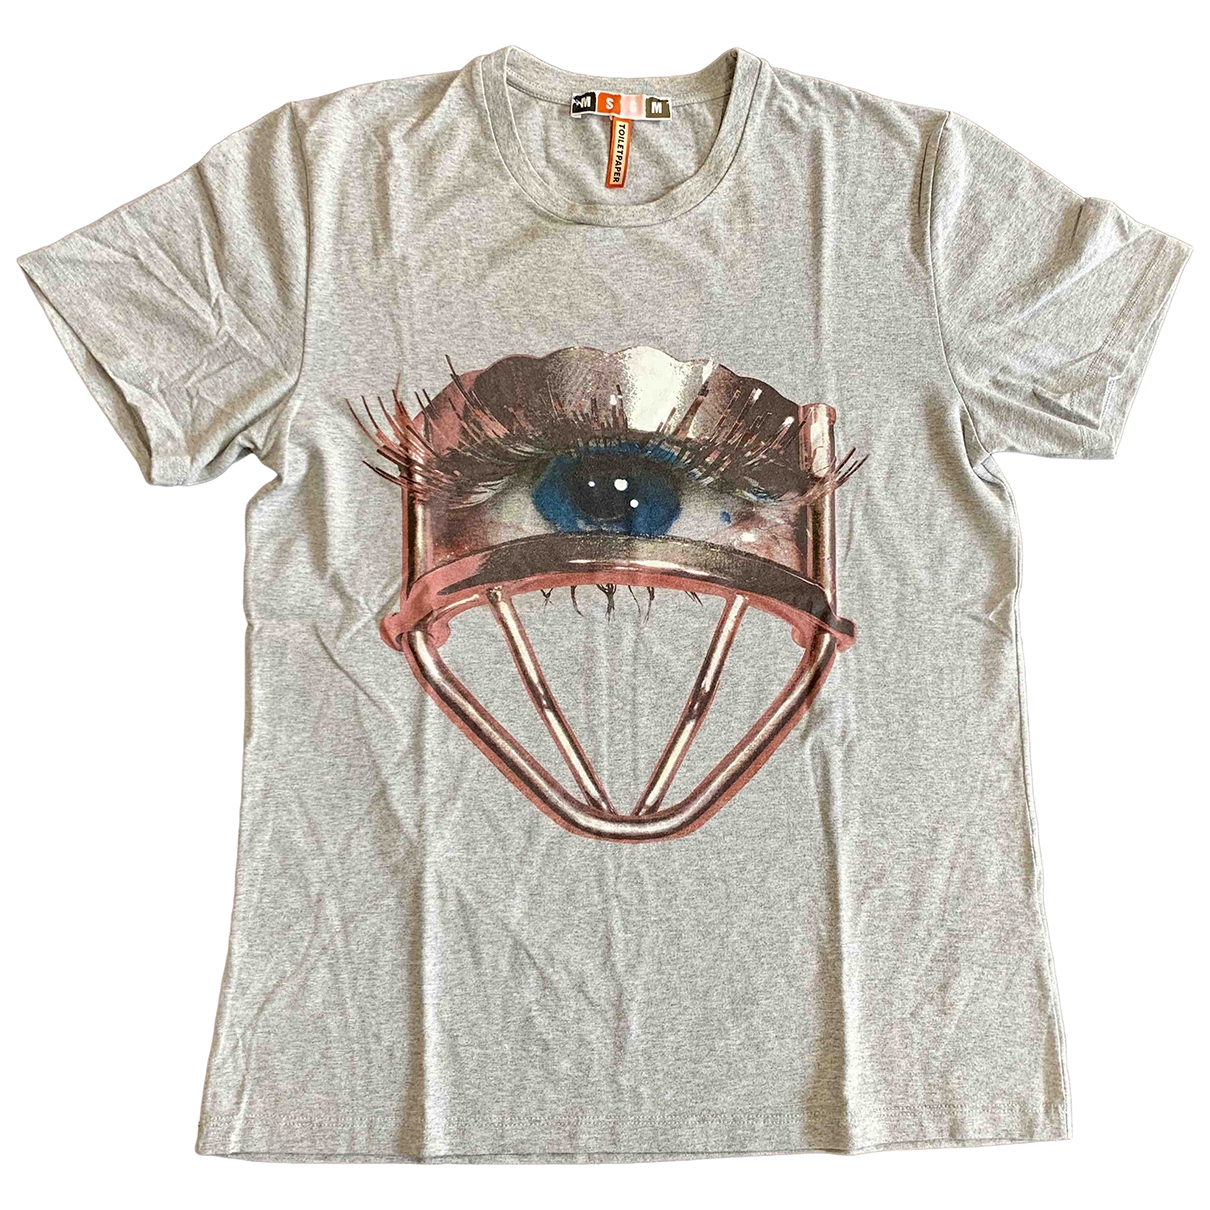 Msgm \N Grey Cotton  top for Women 32 FR